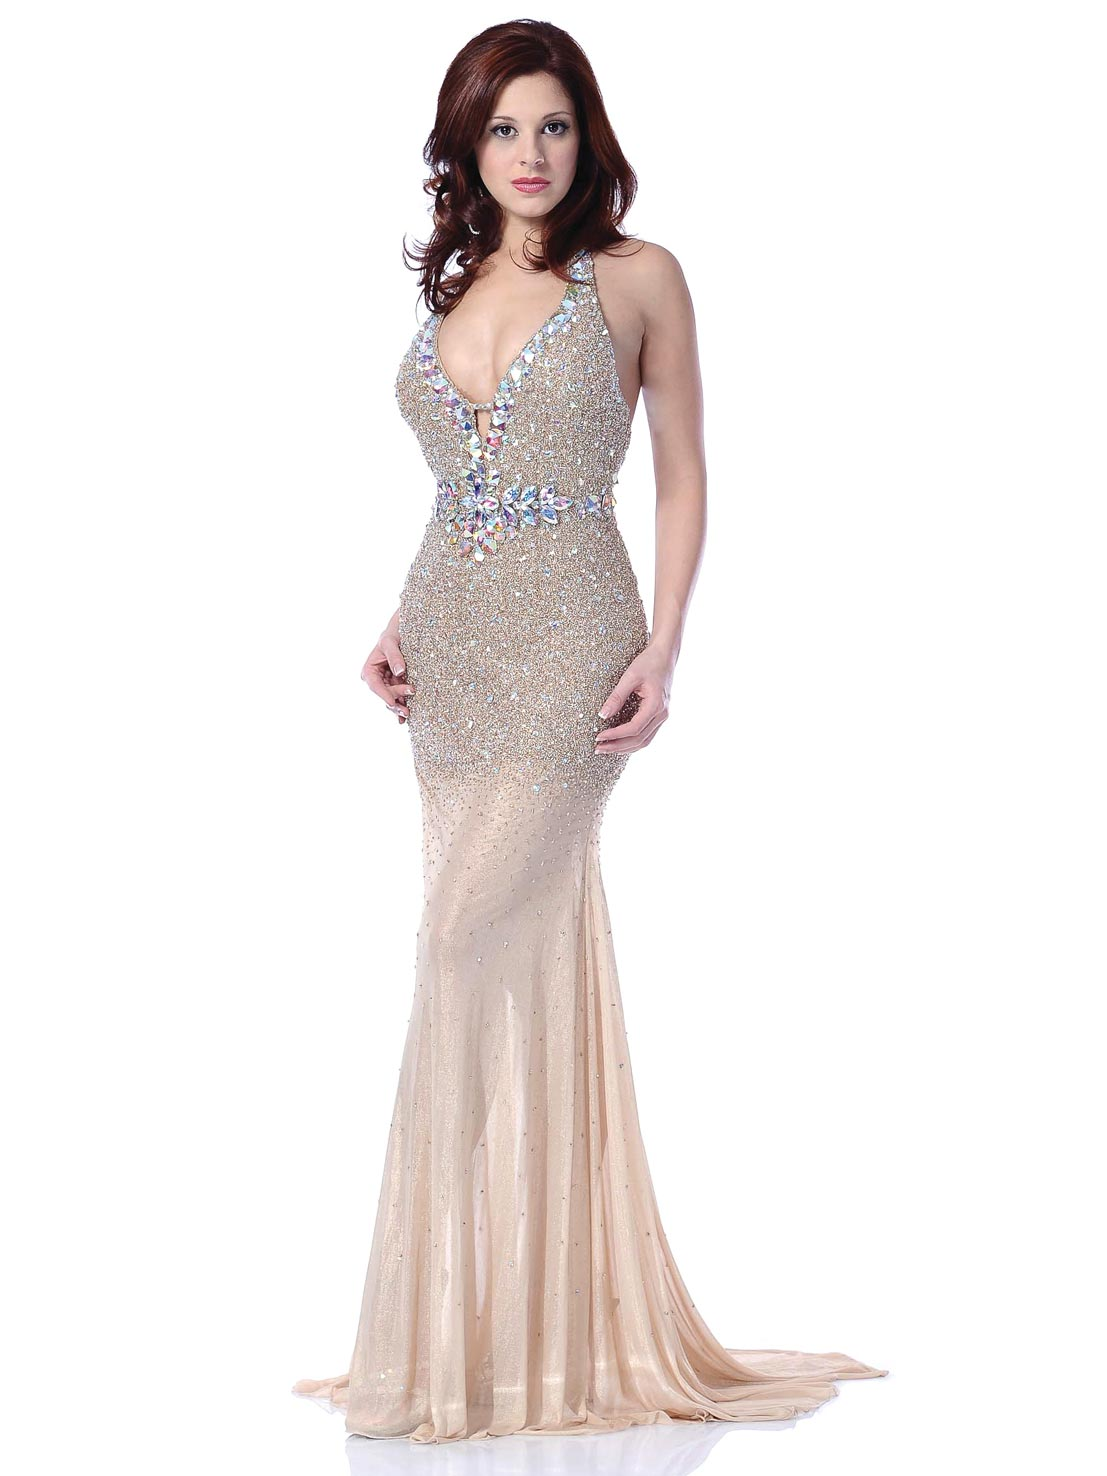 Cheap Discount Pageant Dresses for Sale: PageantDesigns.com